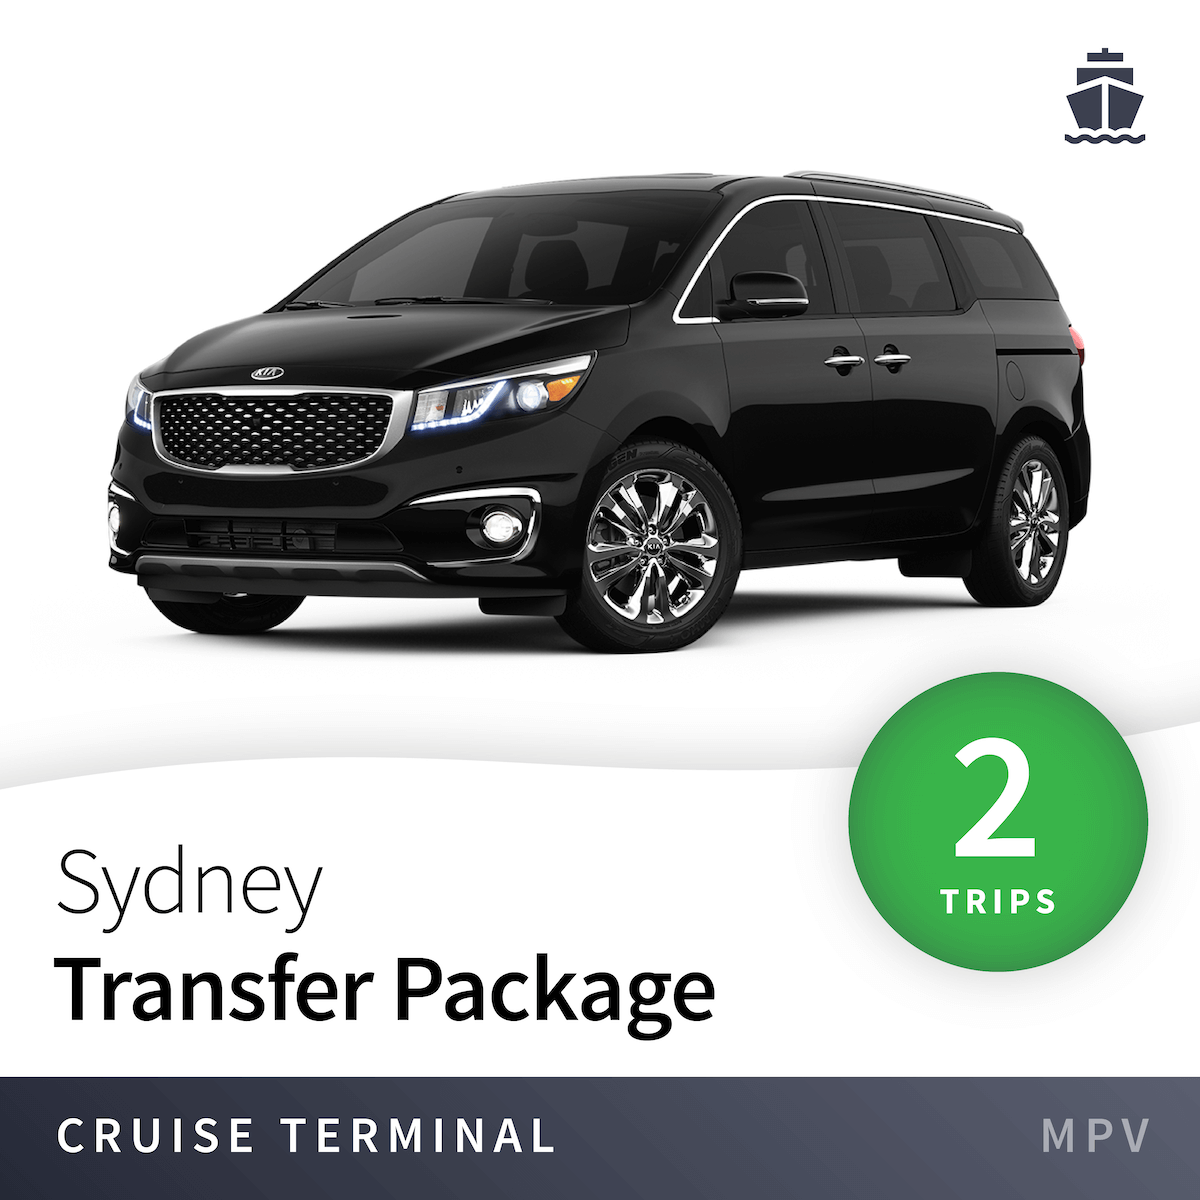 Sydney Cruise Terminal Transfer Package - MPV (2 Trips) 5